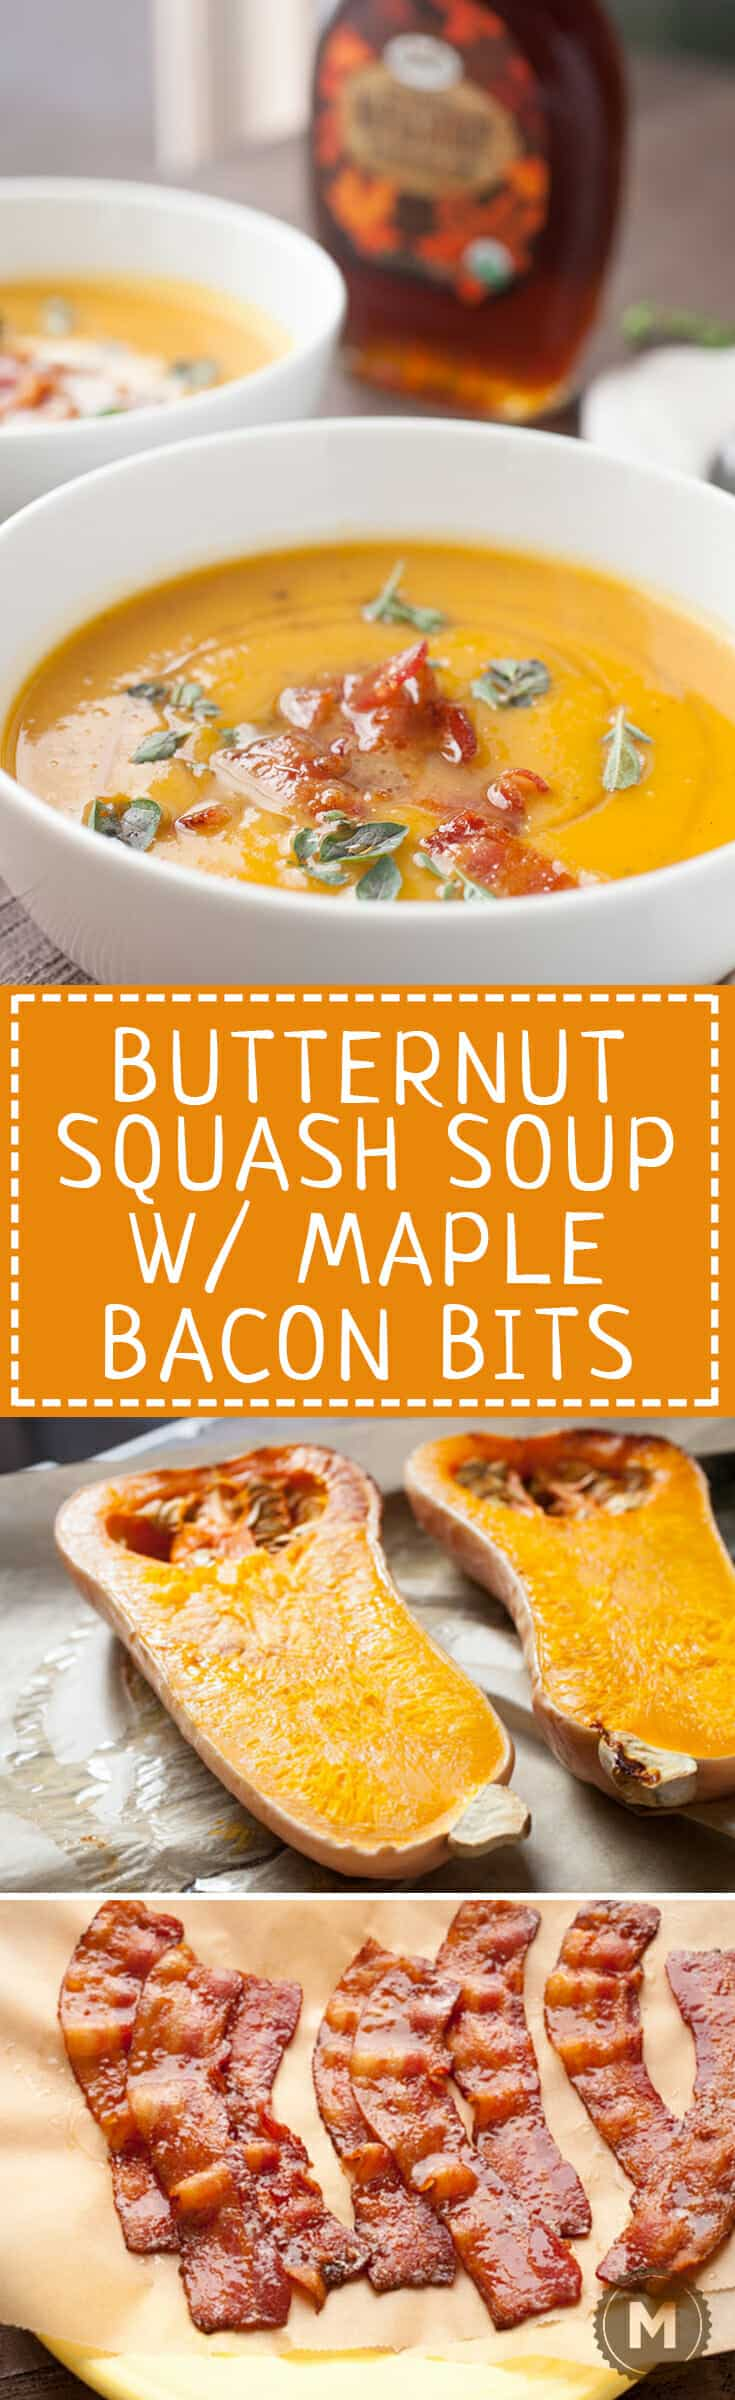 Butternut Squash Soup with Maple Bacon: Say hello to fall with this delicious roasted squash soup. The soup itself is really easy but gets a nice crunch and sweetness from crumbled maple bacon on top! YUM! | macheesmo.com